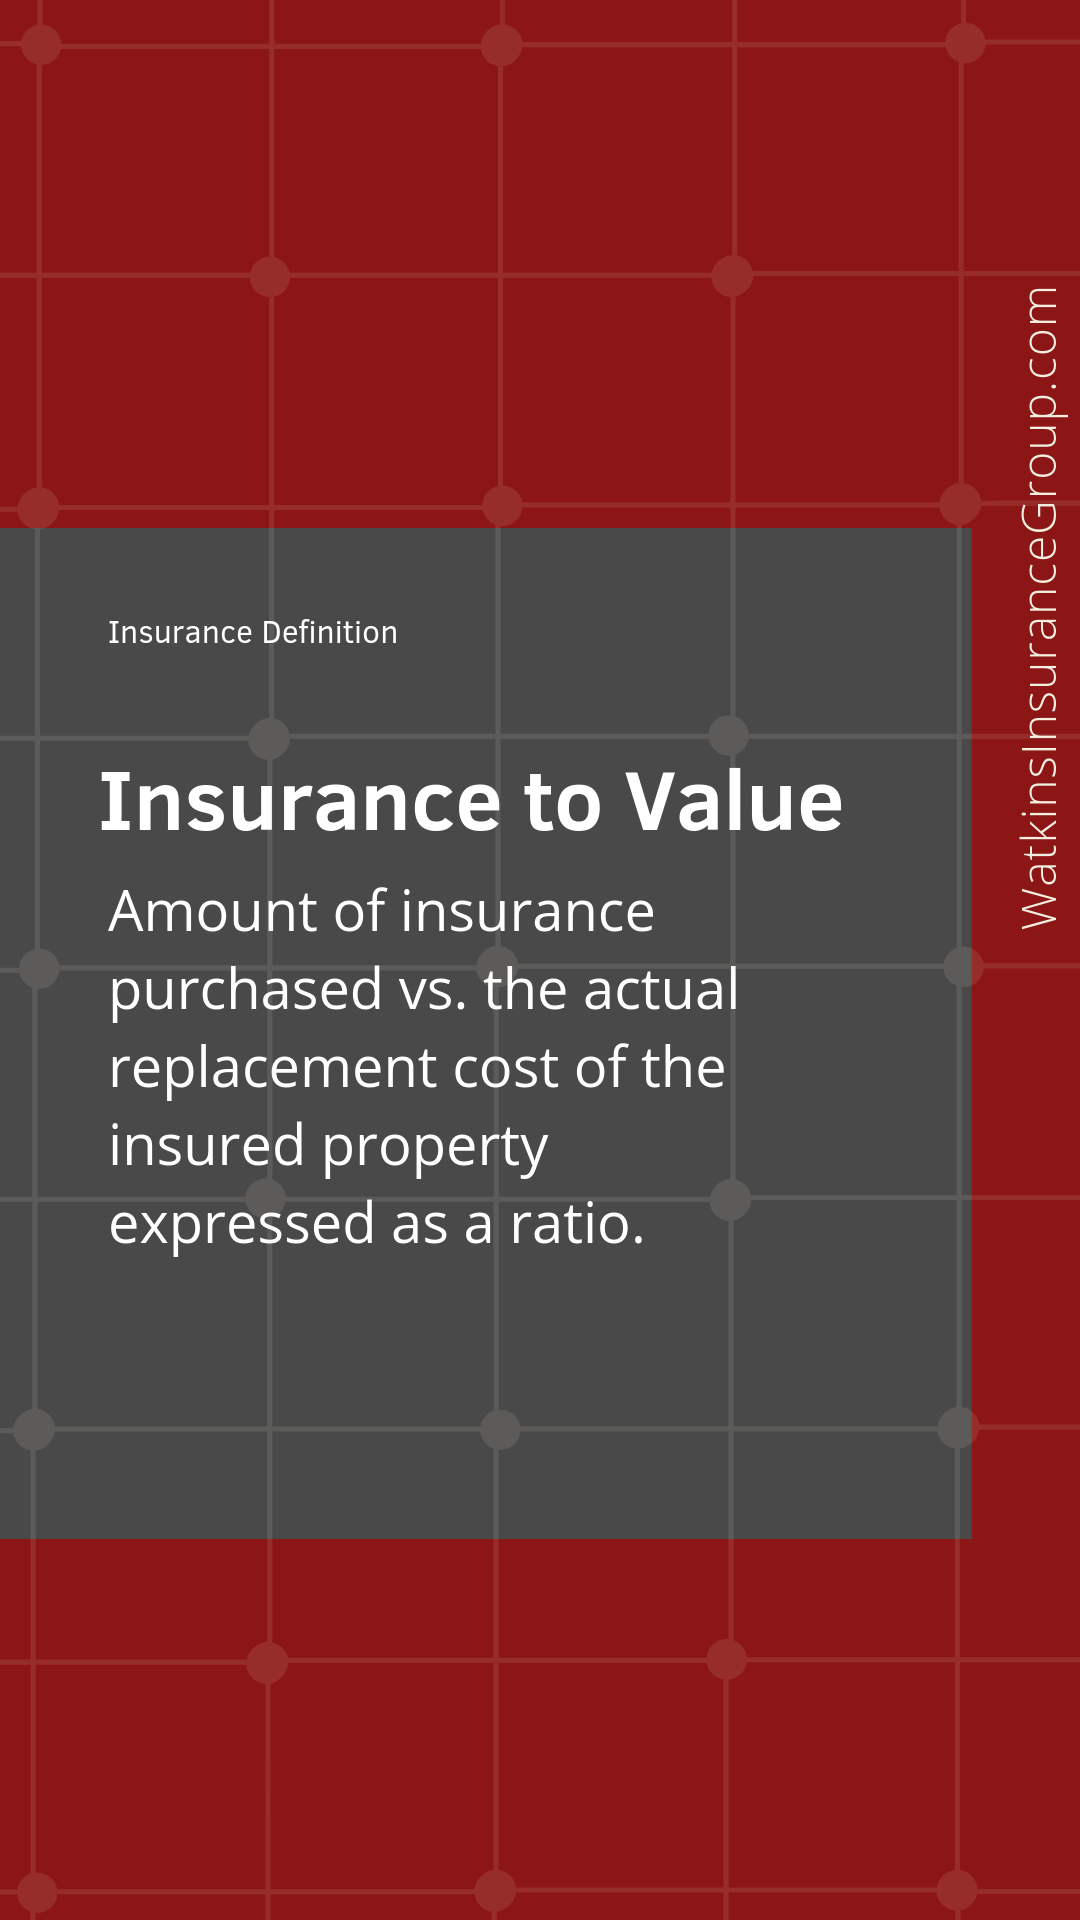 Insurance Policy Statement Seven Great Insurance Policy Statement